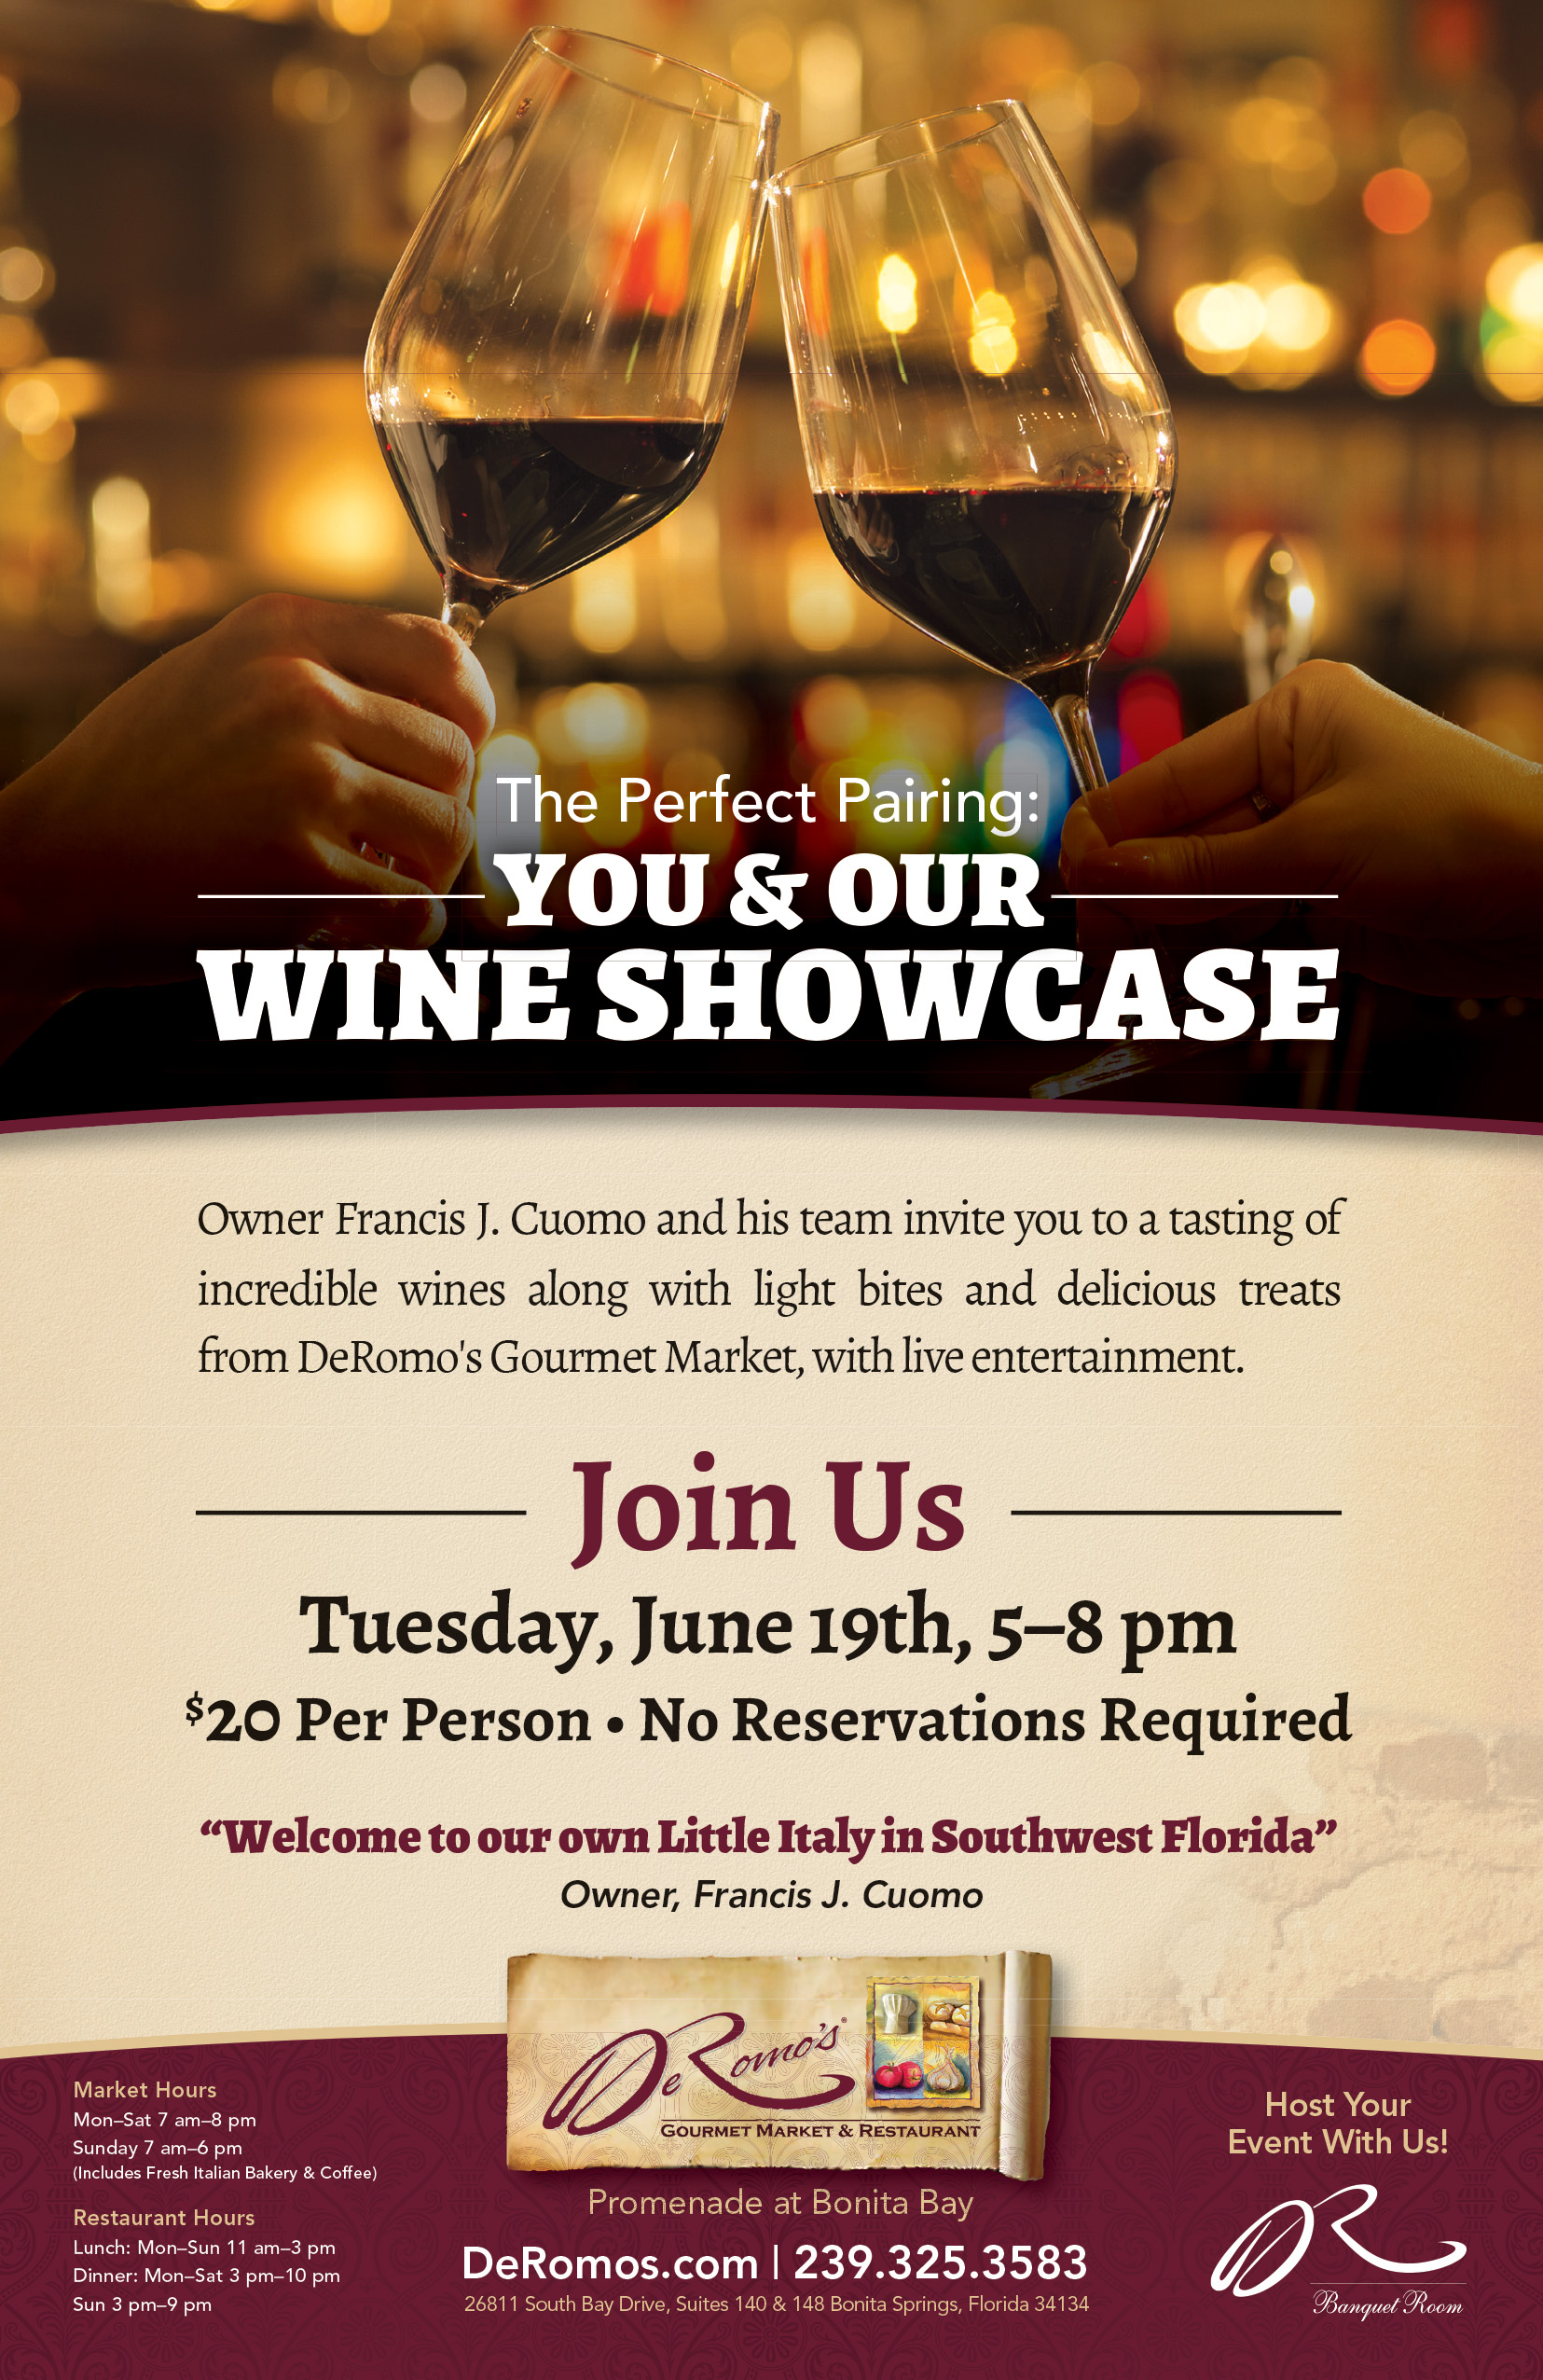 Rsdr 2030817 20wine 20showcase 20flyer 20summer 2018